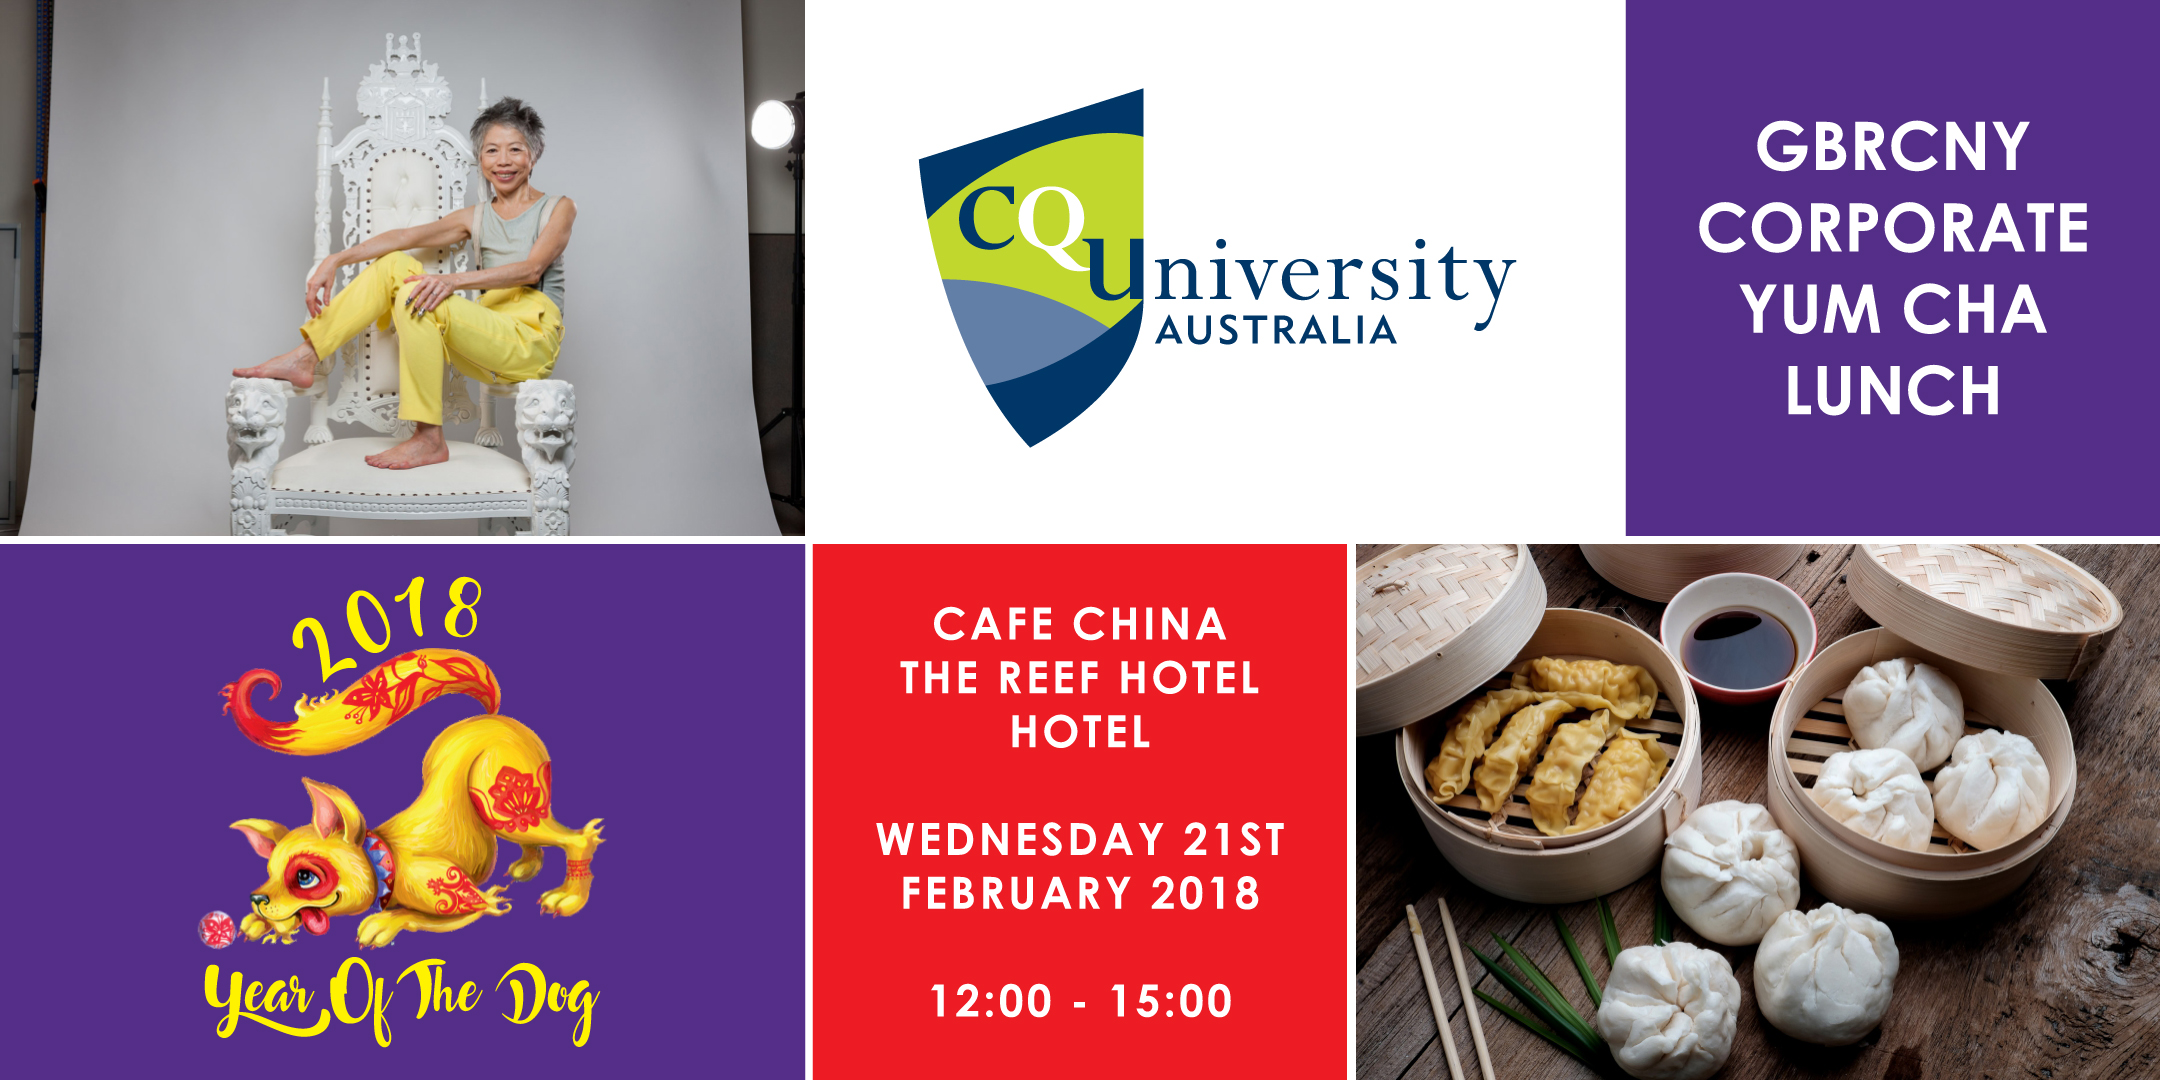 cquniversity corporate yum cha lunch